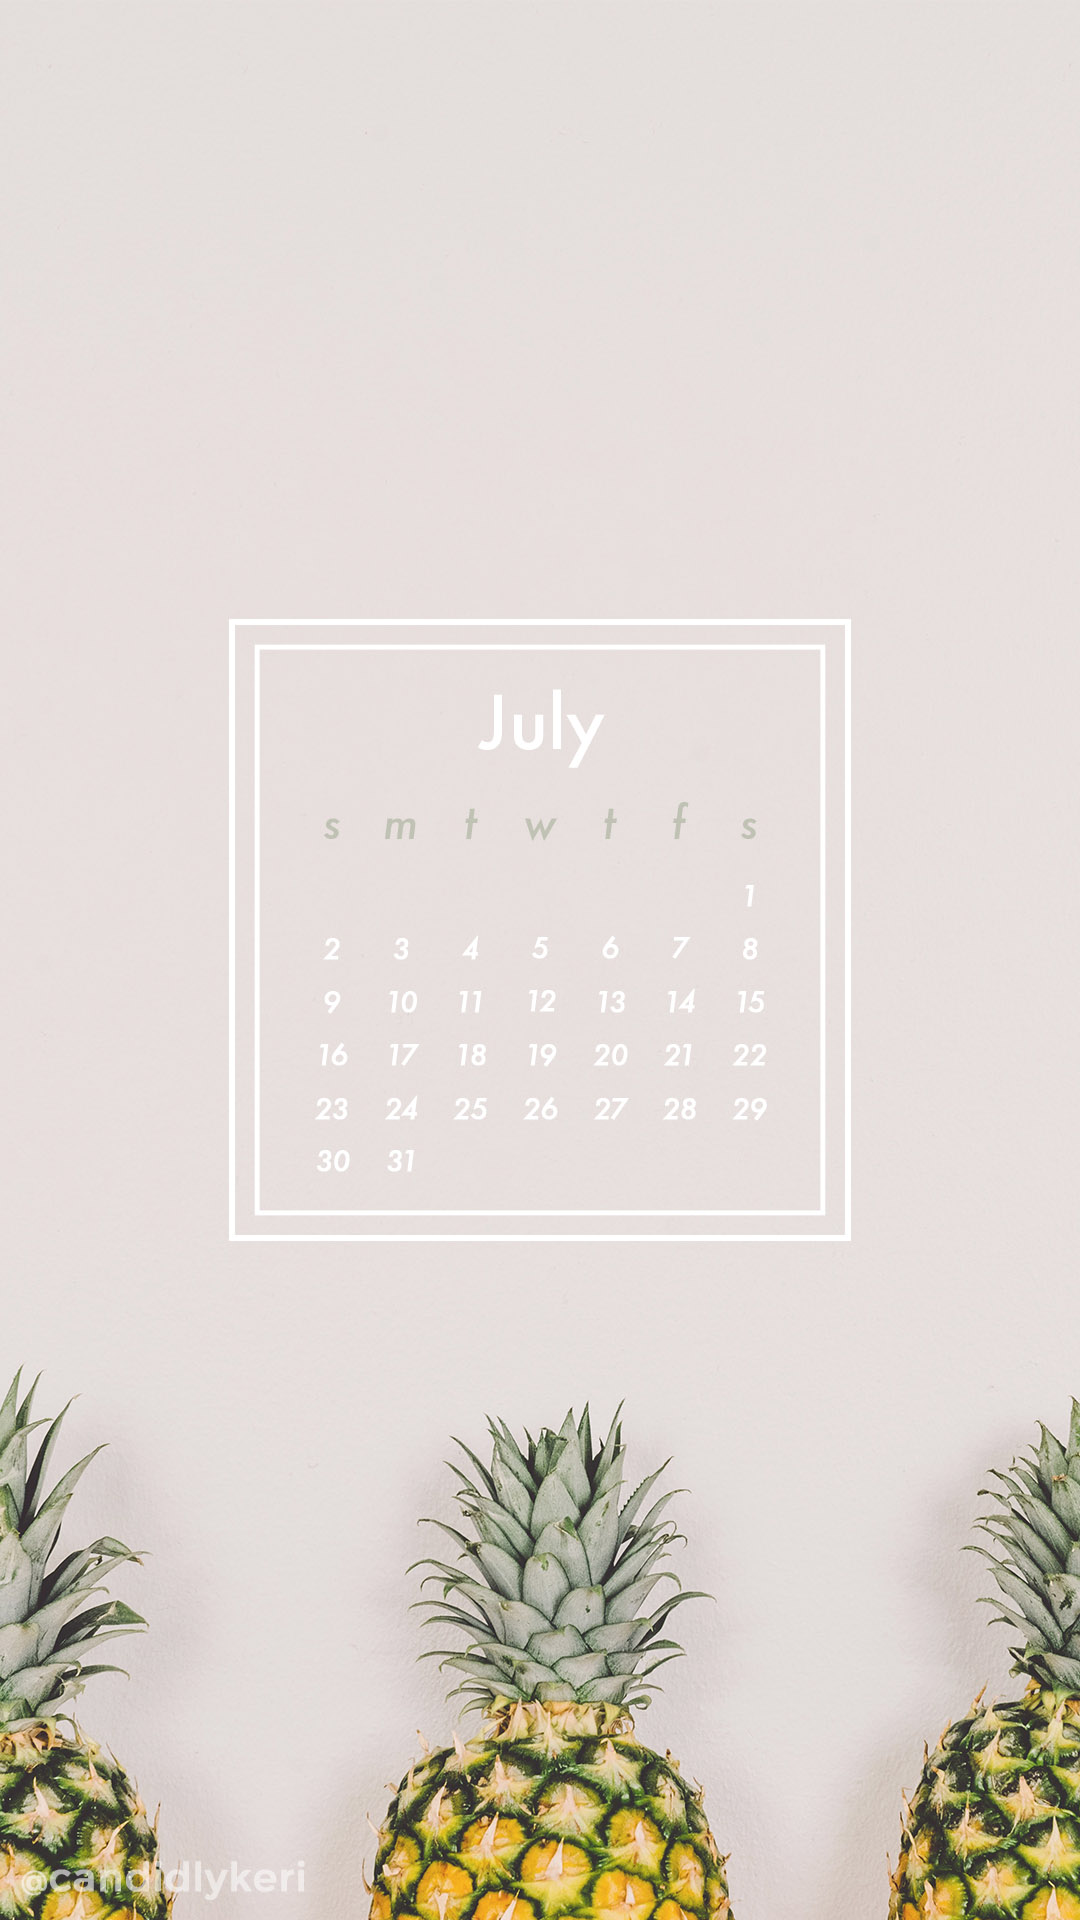 Pineapple-fun-geo-shape-summer-July-calendar-you-can-download-for-free-on-the-blog-F-wallpaper-wp3809163